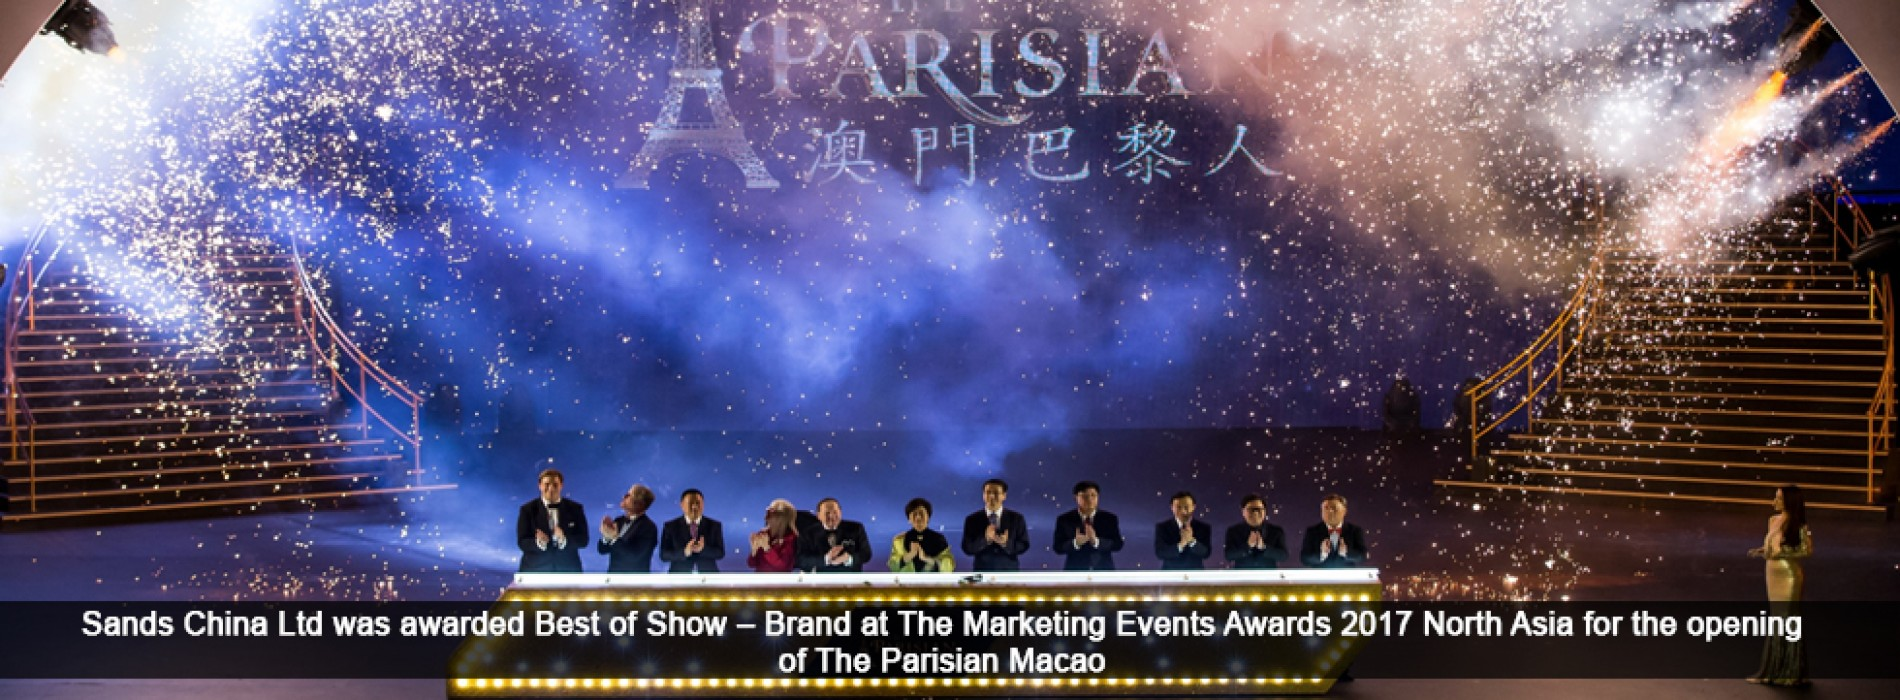 Sands China Ltd. scoops top honours for The Parisian Macao Grand opening at Marketing Events Awards 2017